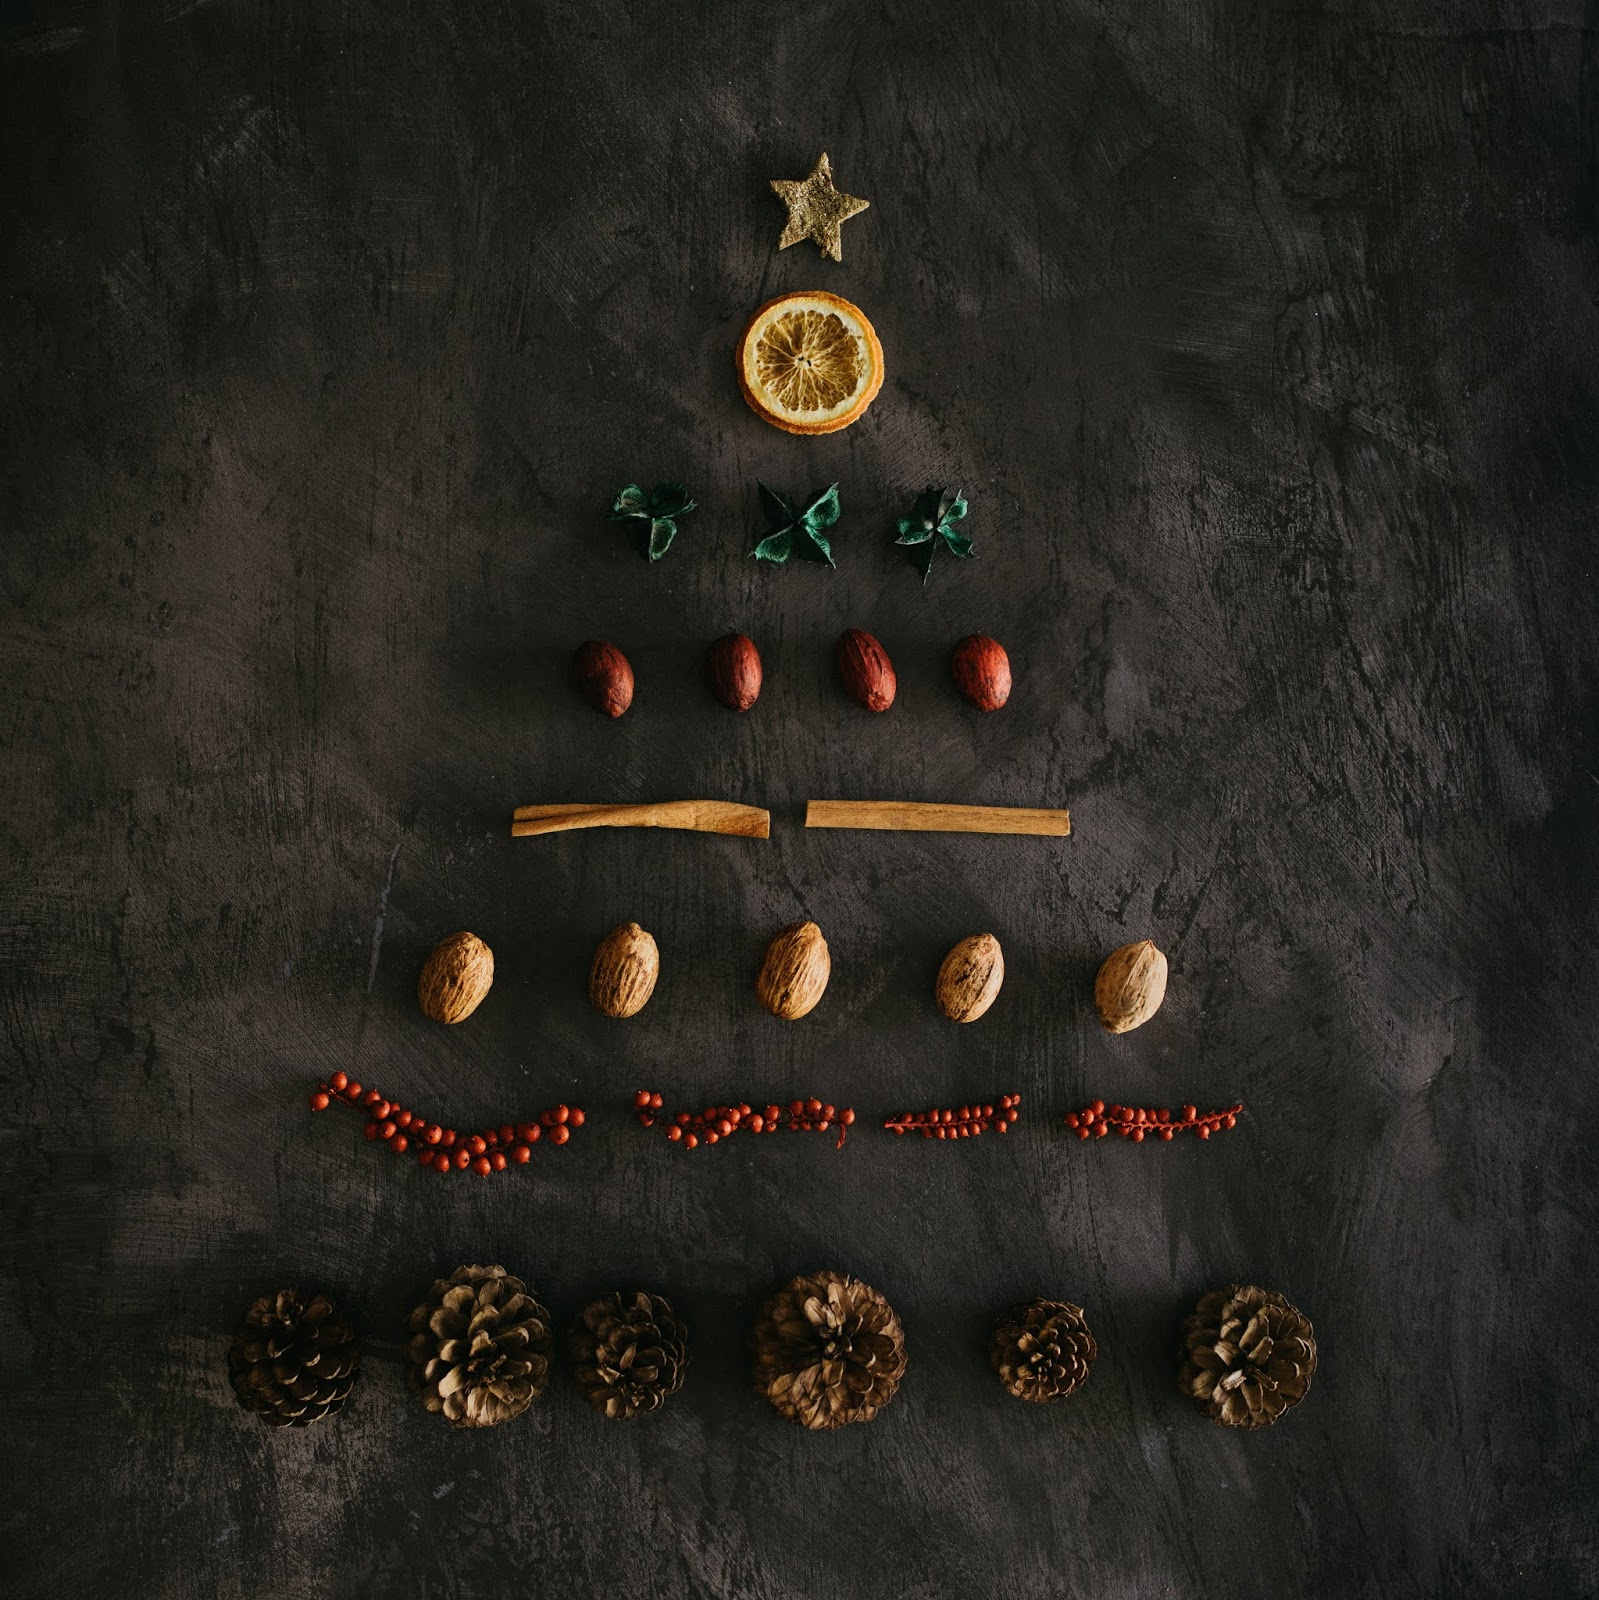 A photo taken from above of the shape of a Yule tree laid out on a black board-esque surface, made from a star cookie, a dried orange slice, evergreen leaves, brown nuts, cinnamon sticks, walnuts, strings of red berries, and pinecones.